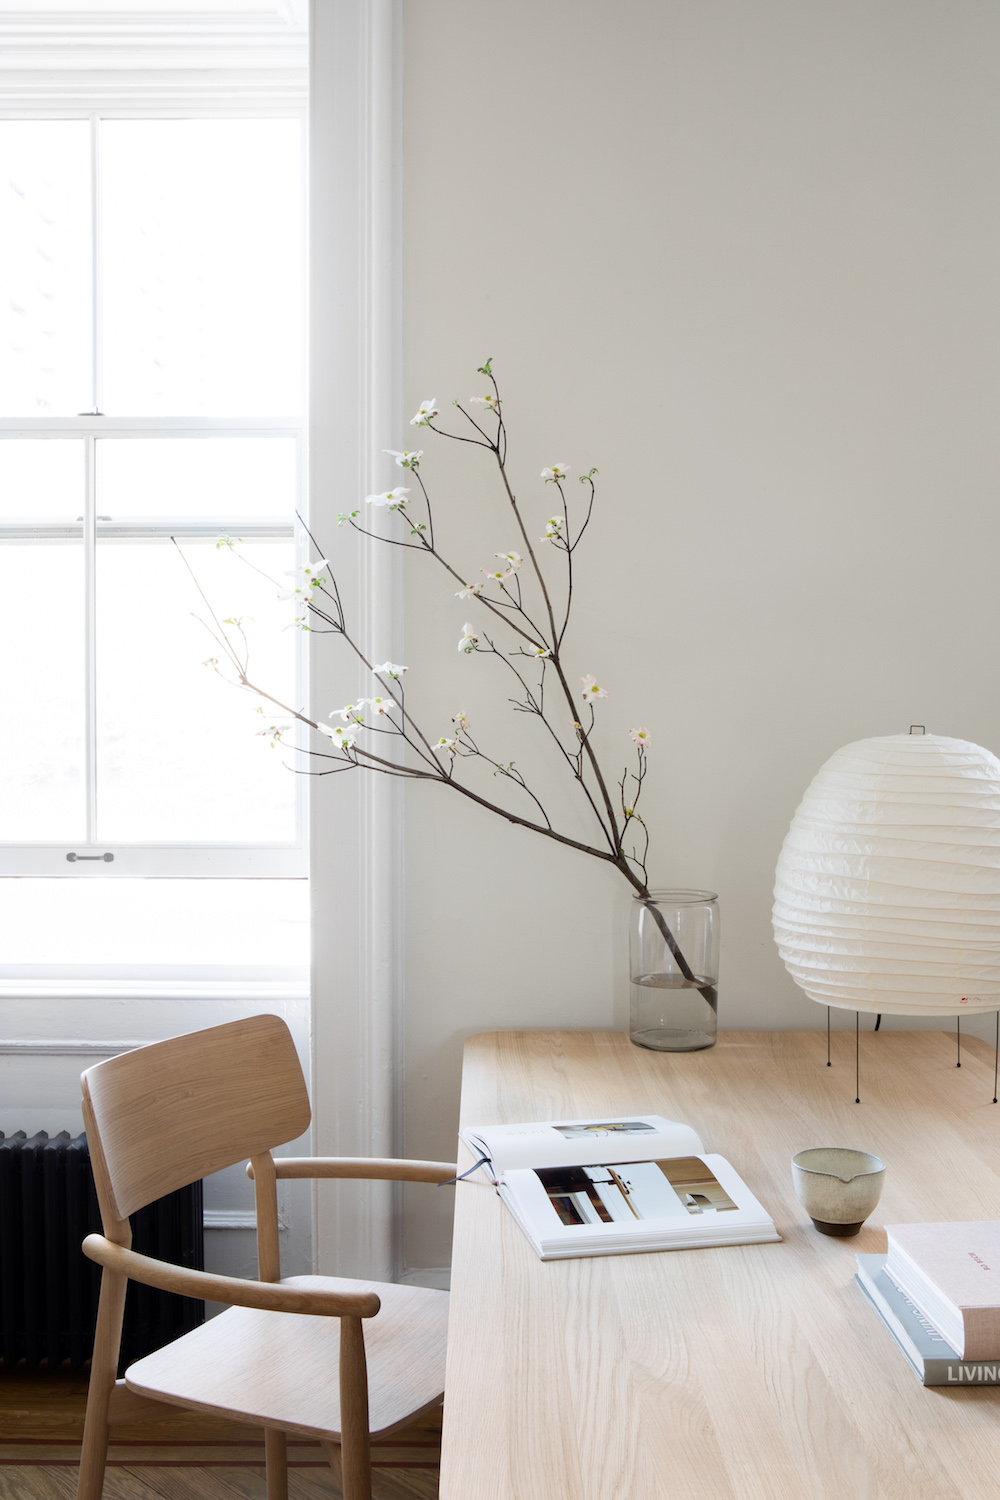 Interior trends 2021: Home detox, decluttering and advanced organization